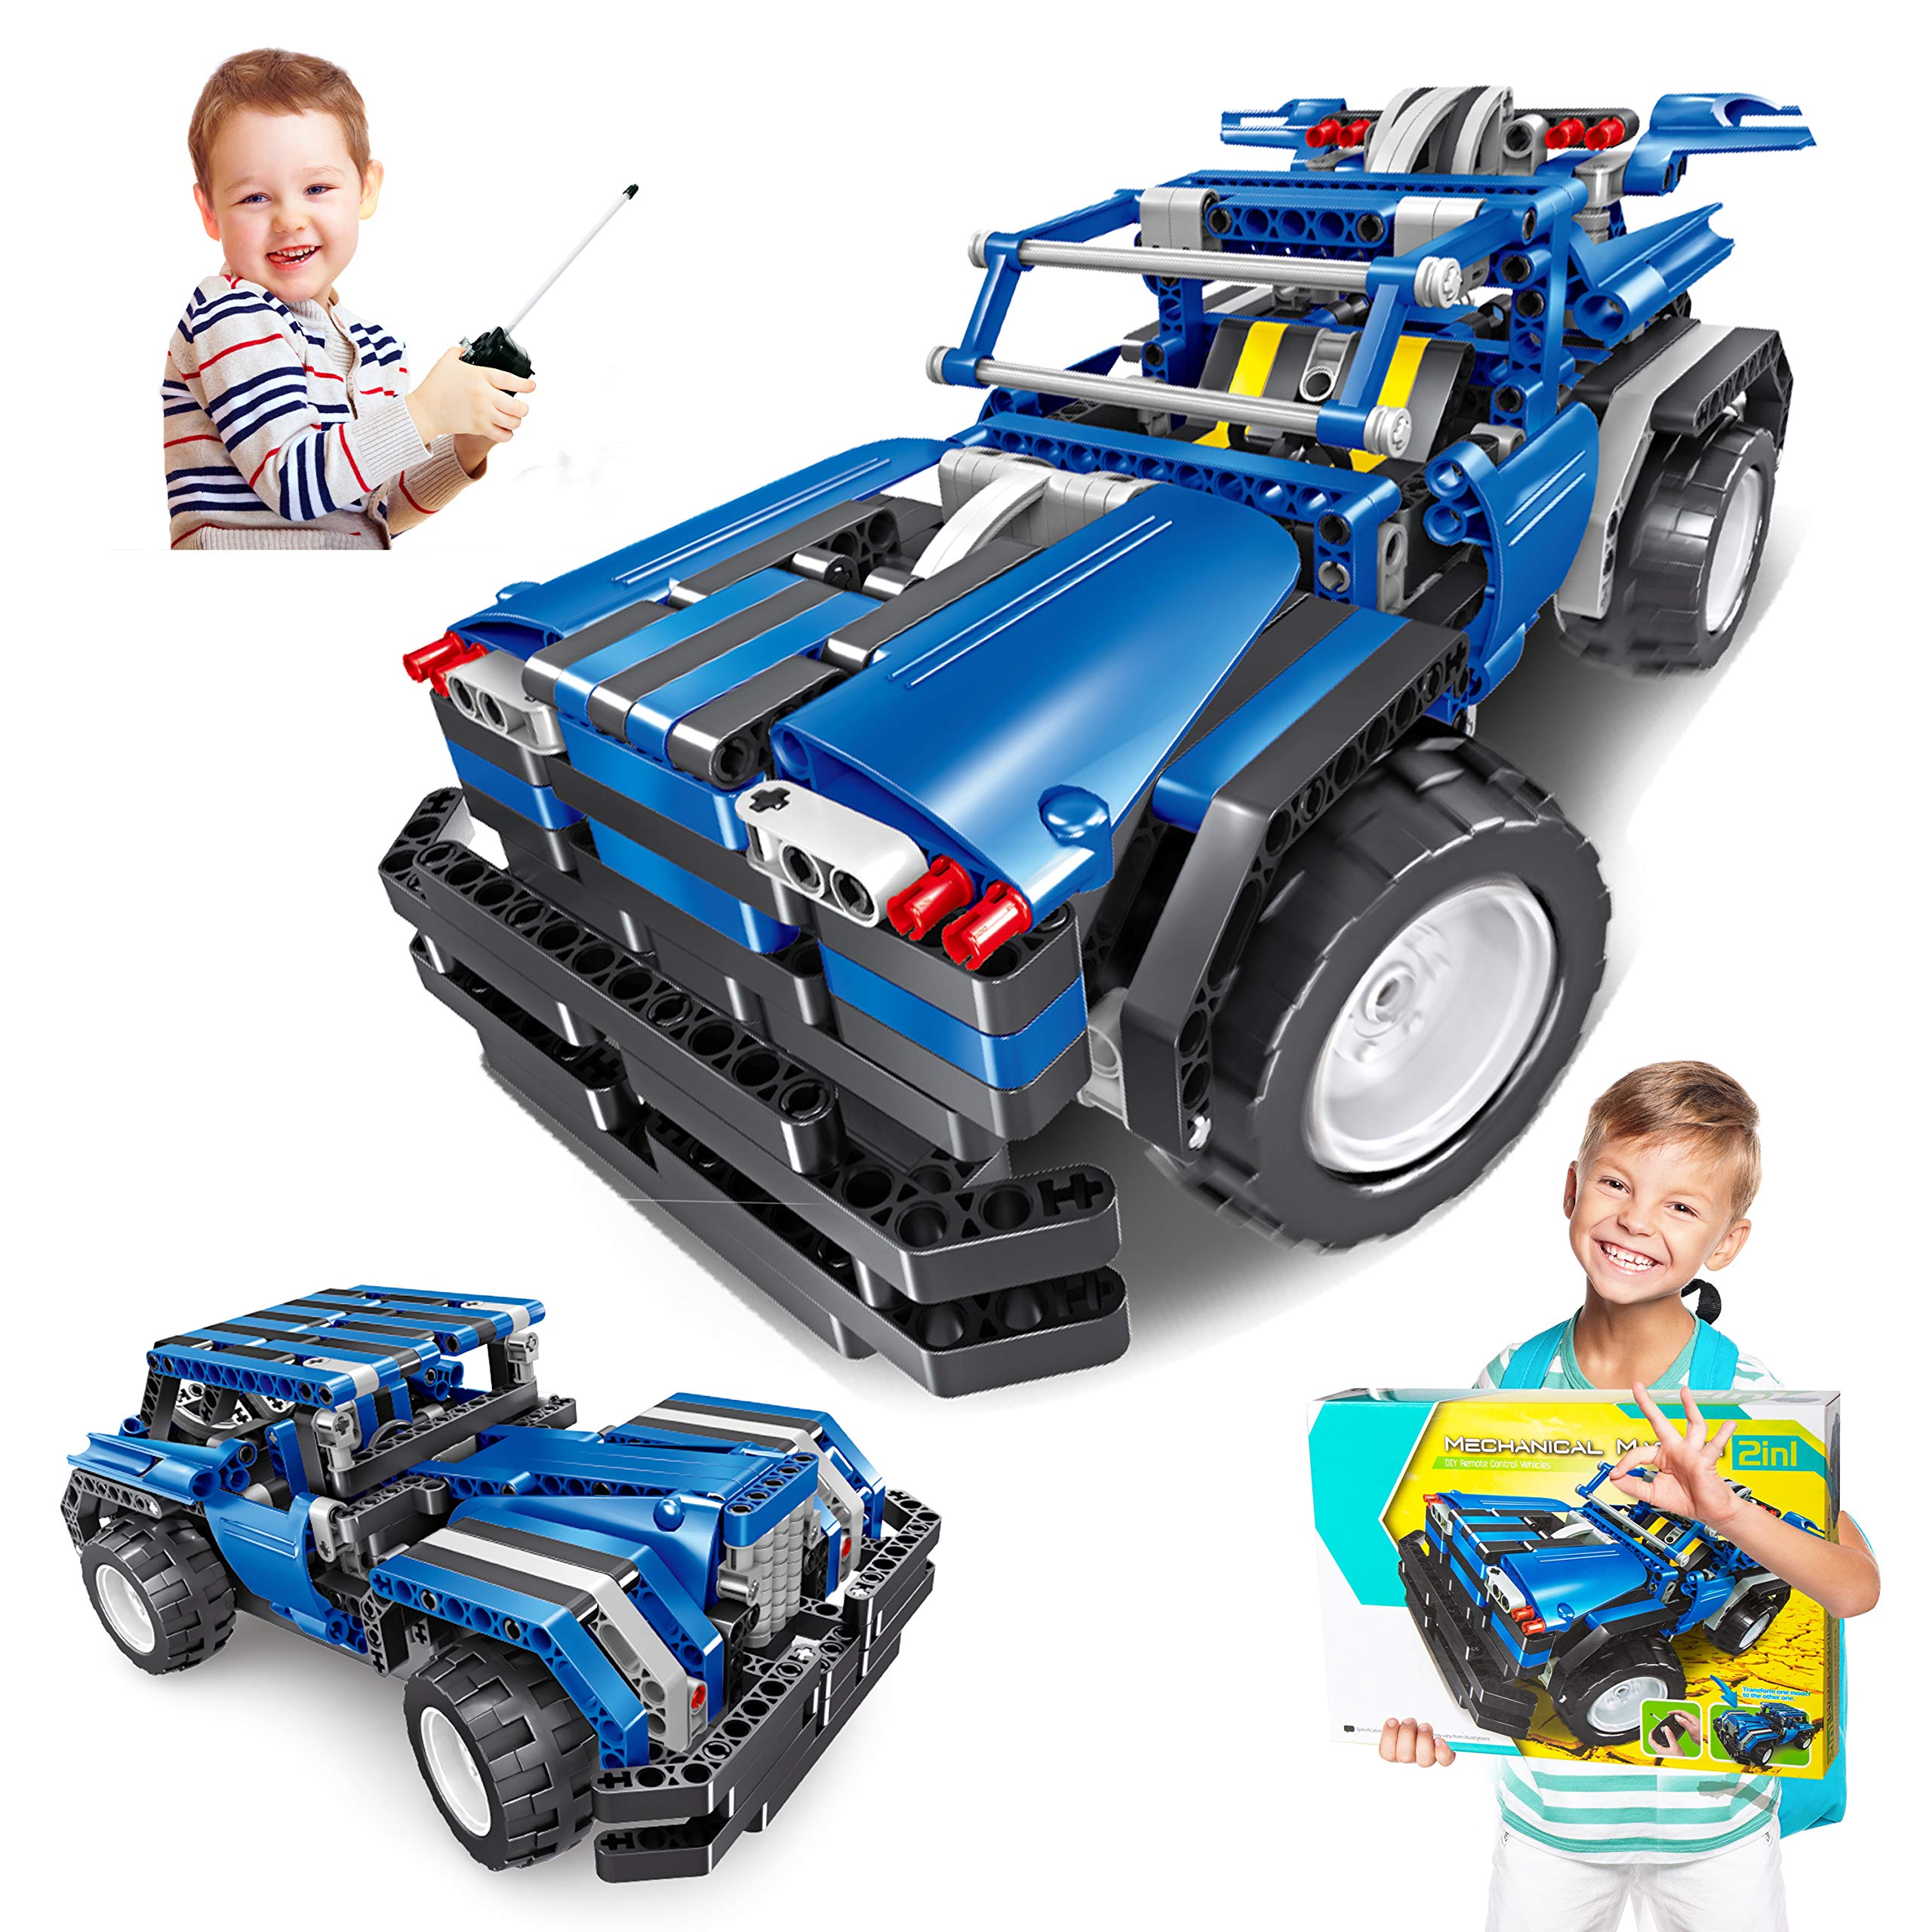 STEM Engineering Toys for Boys & Girls, Building Blocks Kit for Kids 6,7,8,9 Year Old RC Car 443pcs Educational Construction Set Birthday Gift for Age 6-14